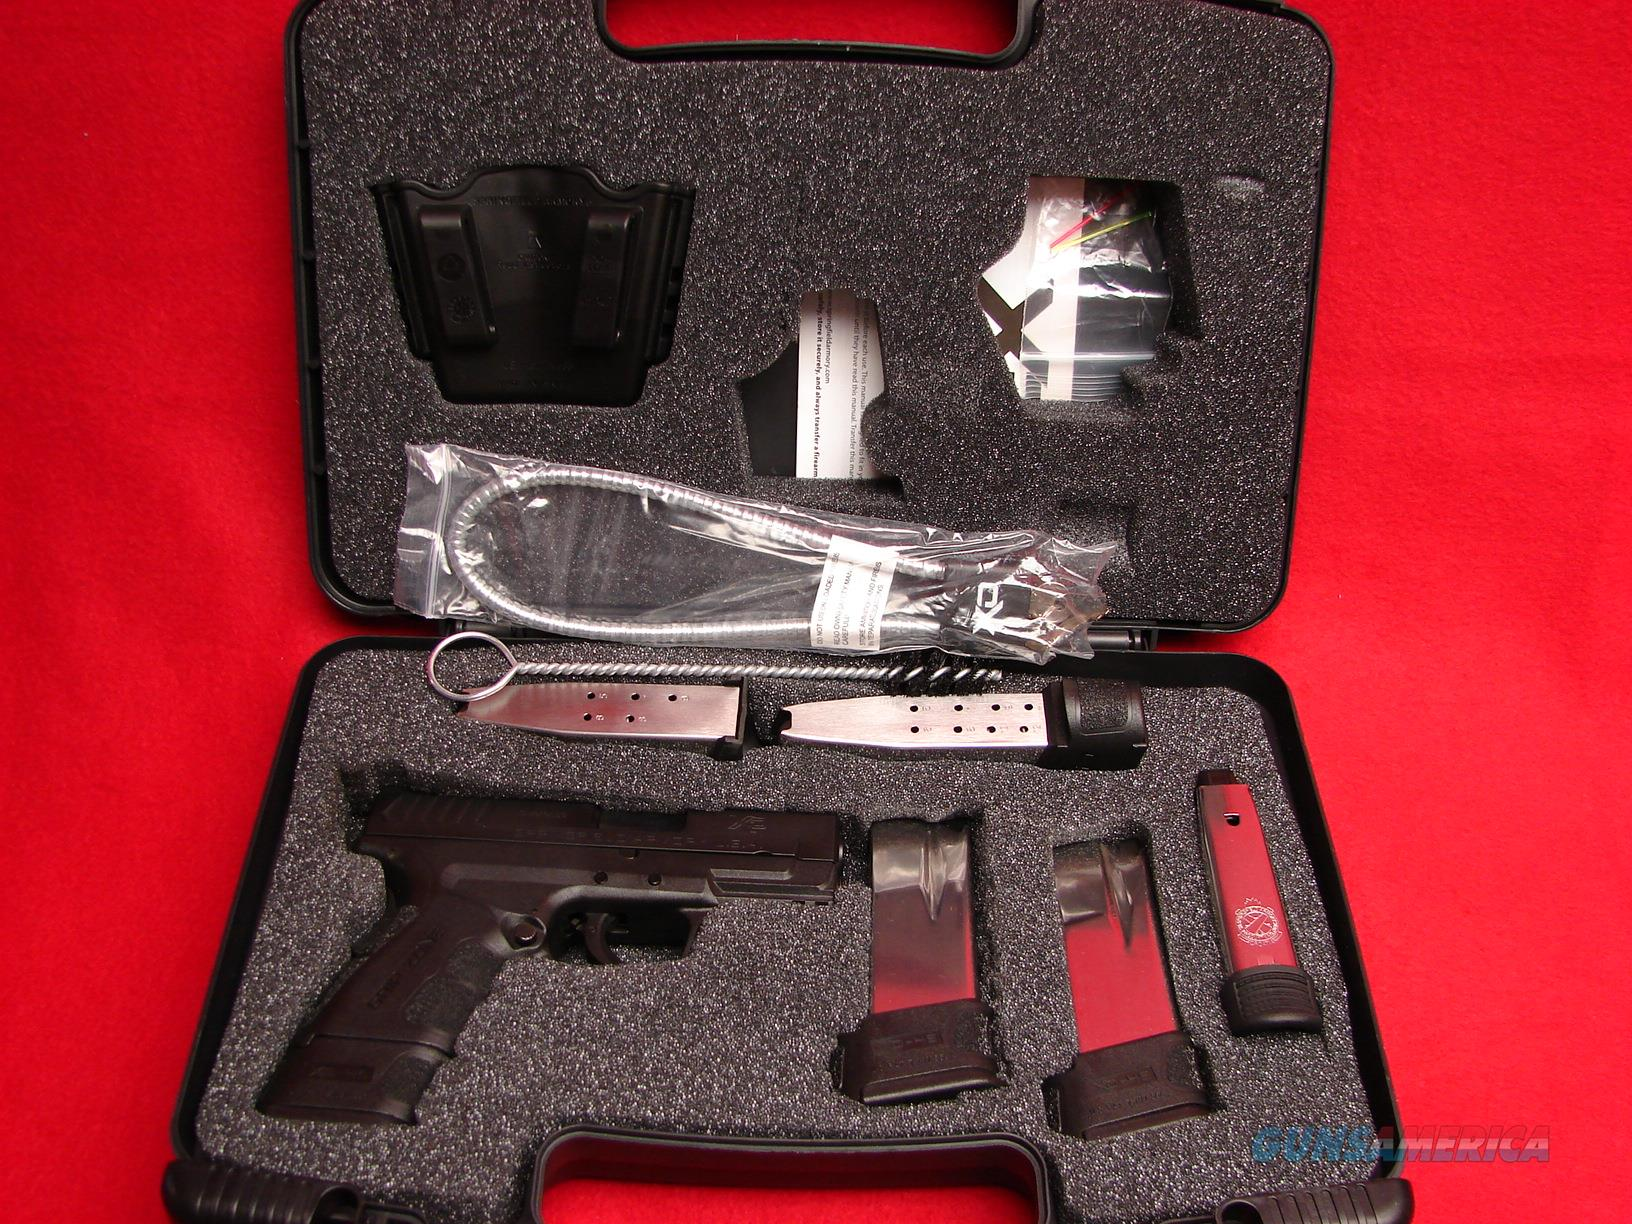 Springfield Armory Mod 2 - w/Grip Zone - XD-45 - w/6 Mags - Holster - Like New  Guns > Pistols > Springfield Armory Pistols > XD-Mod.2